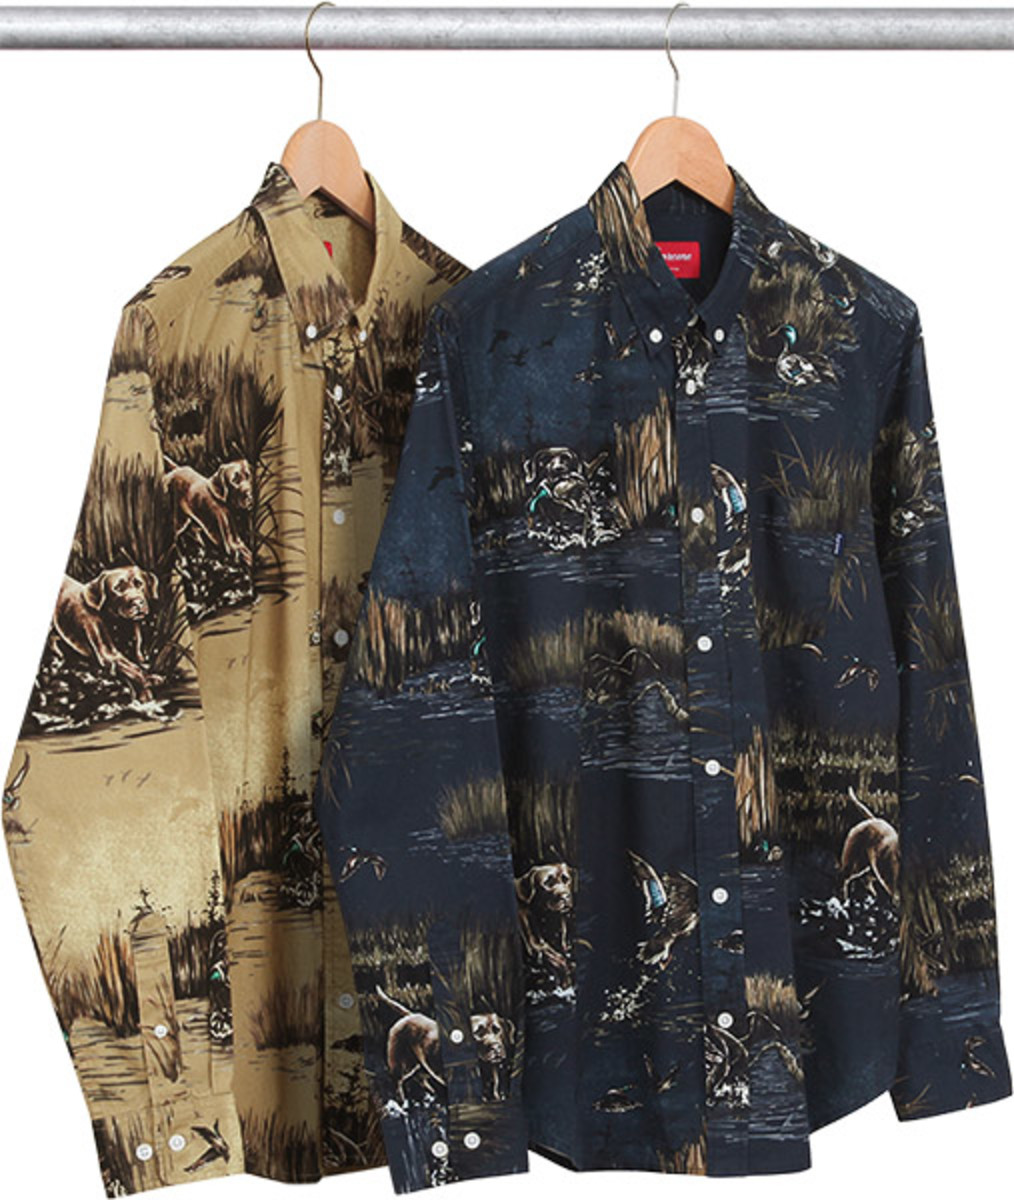 supreme-fall-winter-2012-apparel-13